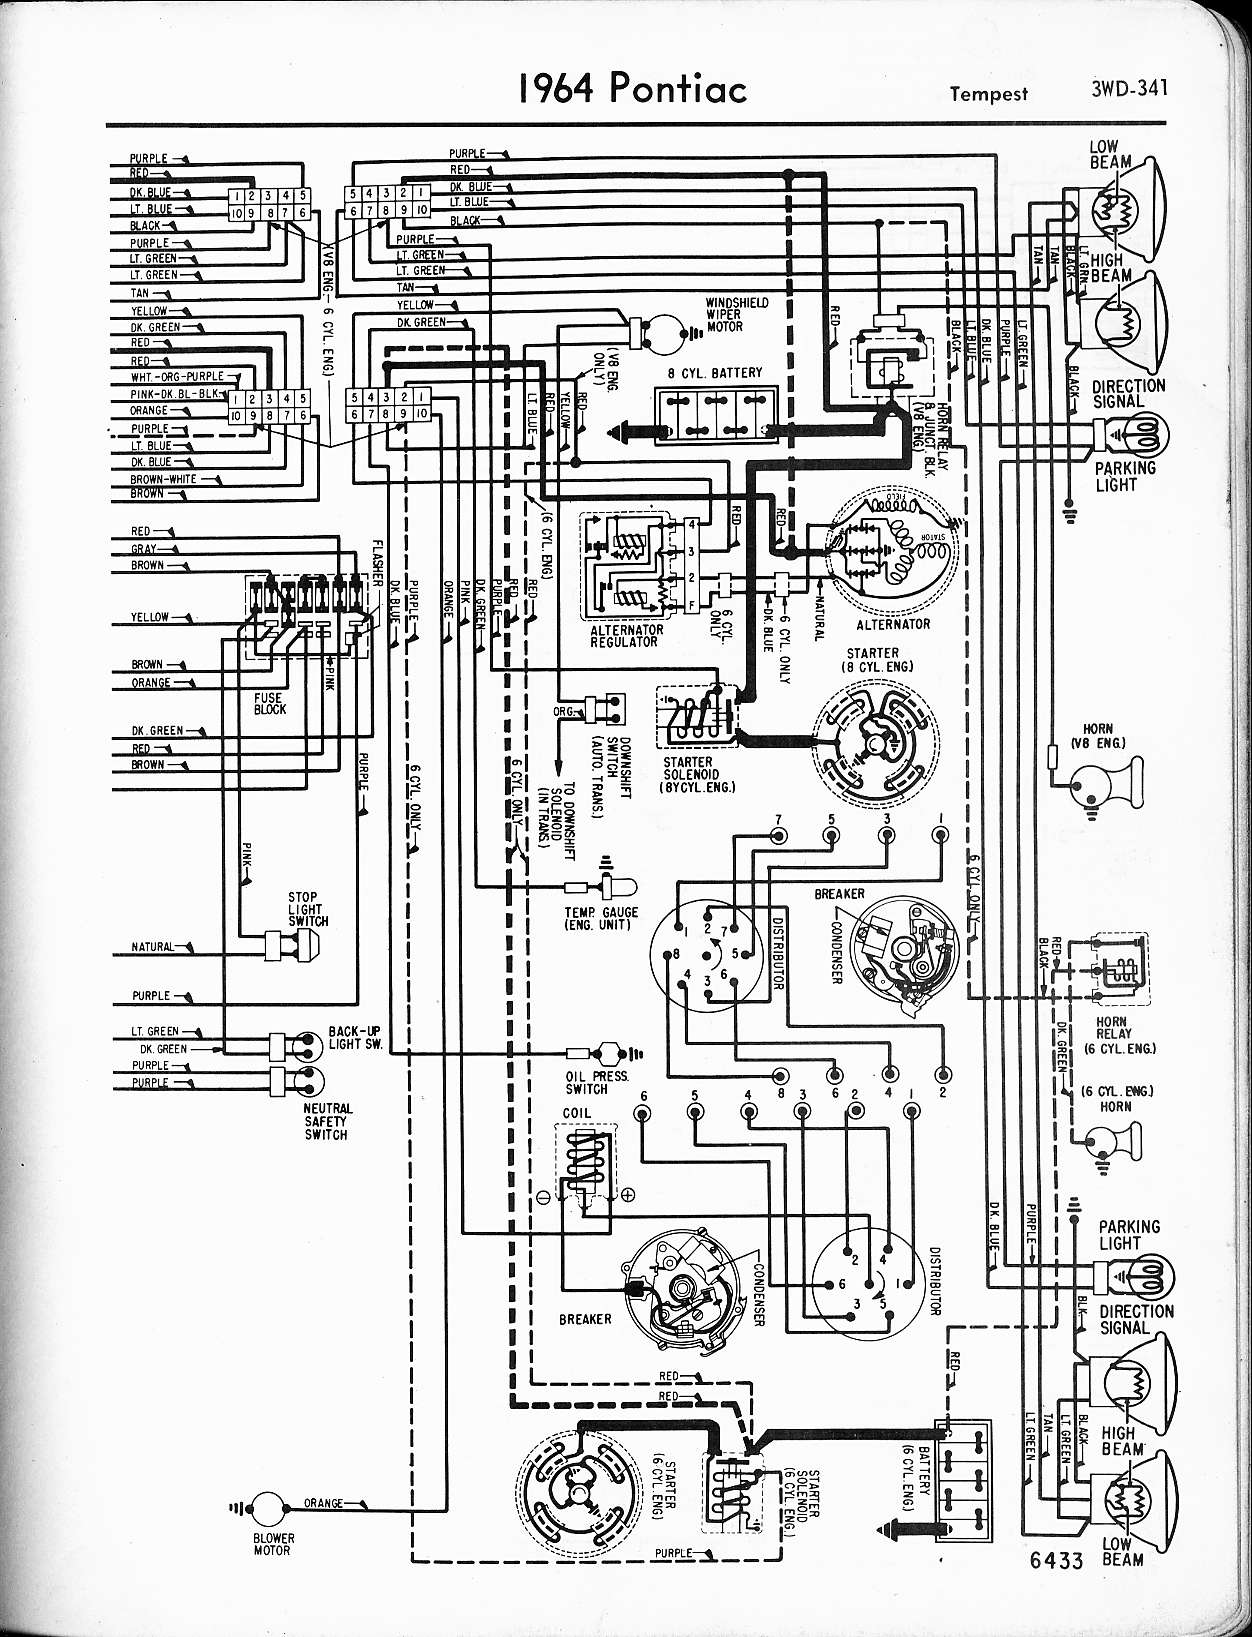 1964 pontiac gto wiring diagram wiring schematic 1972 Chevy Nova Wiring Diagram wallace racing wiring diagrams 1972 pontiac gto wiring diagram 1964 pontiac gto wiring diagram